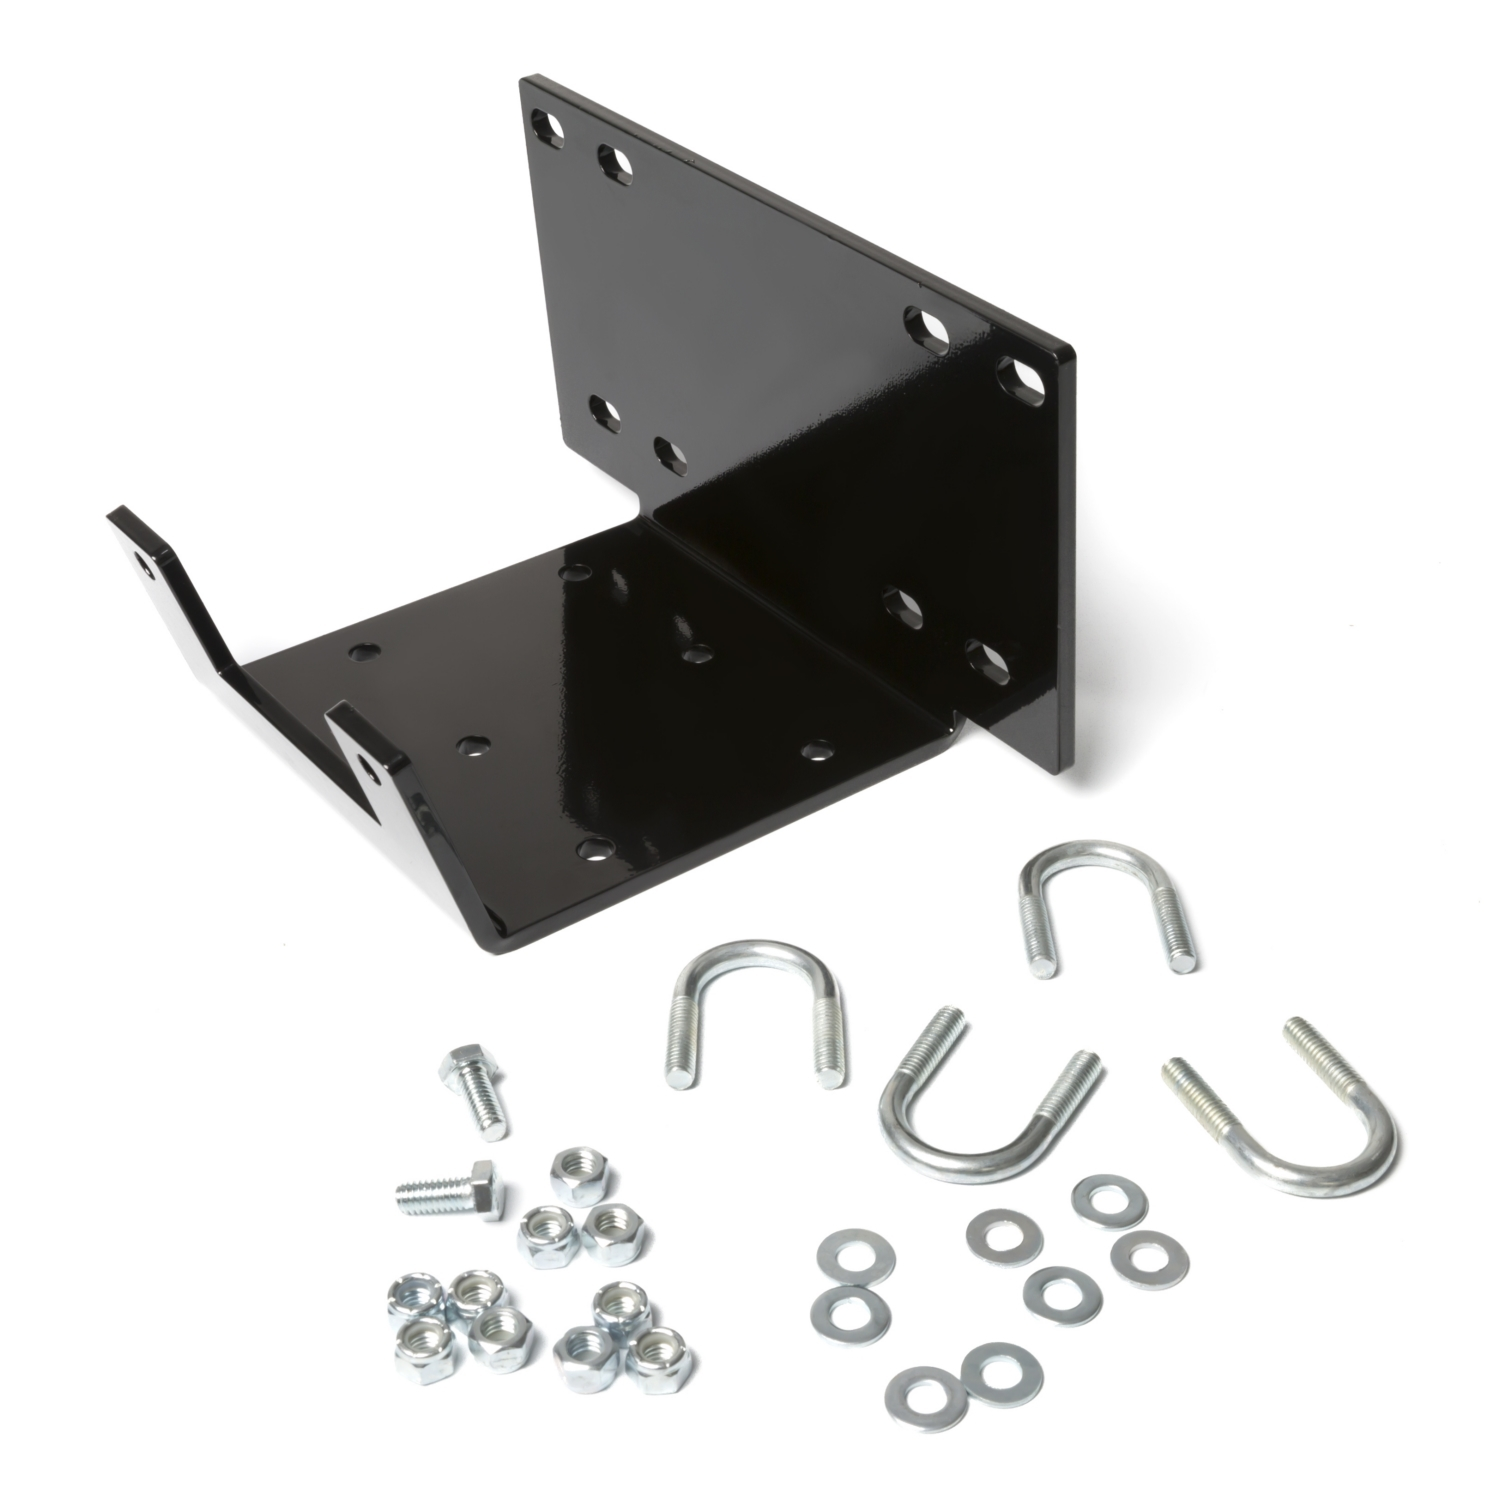 fuse atv winch mount kit 177042 [ 1500 x 1500 Pixel ]